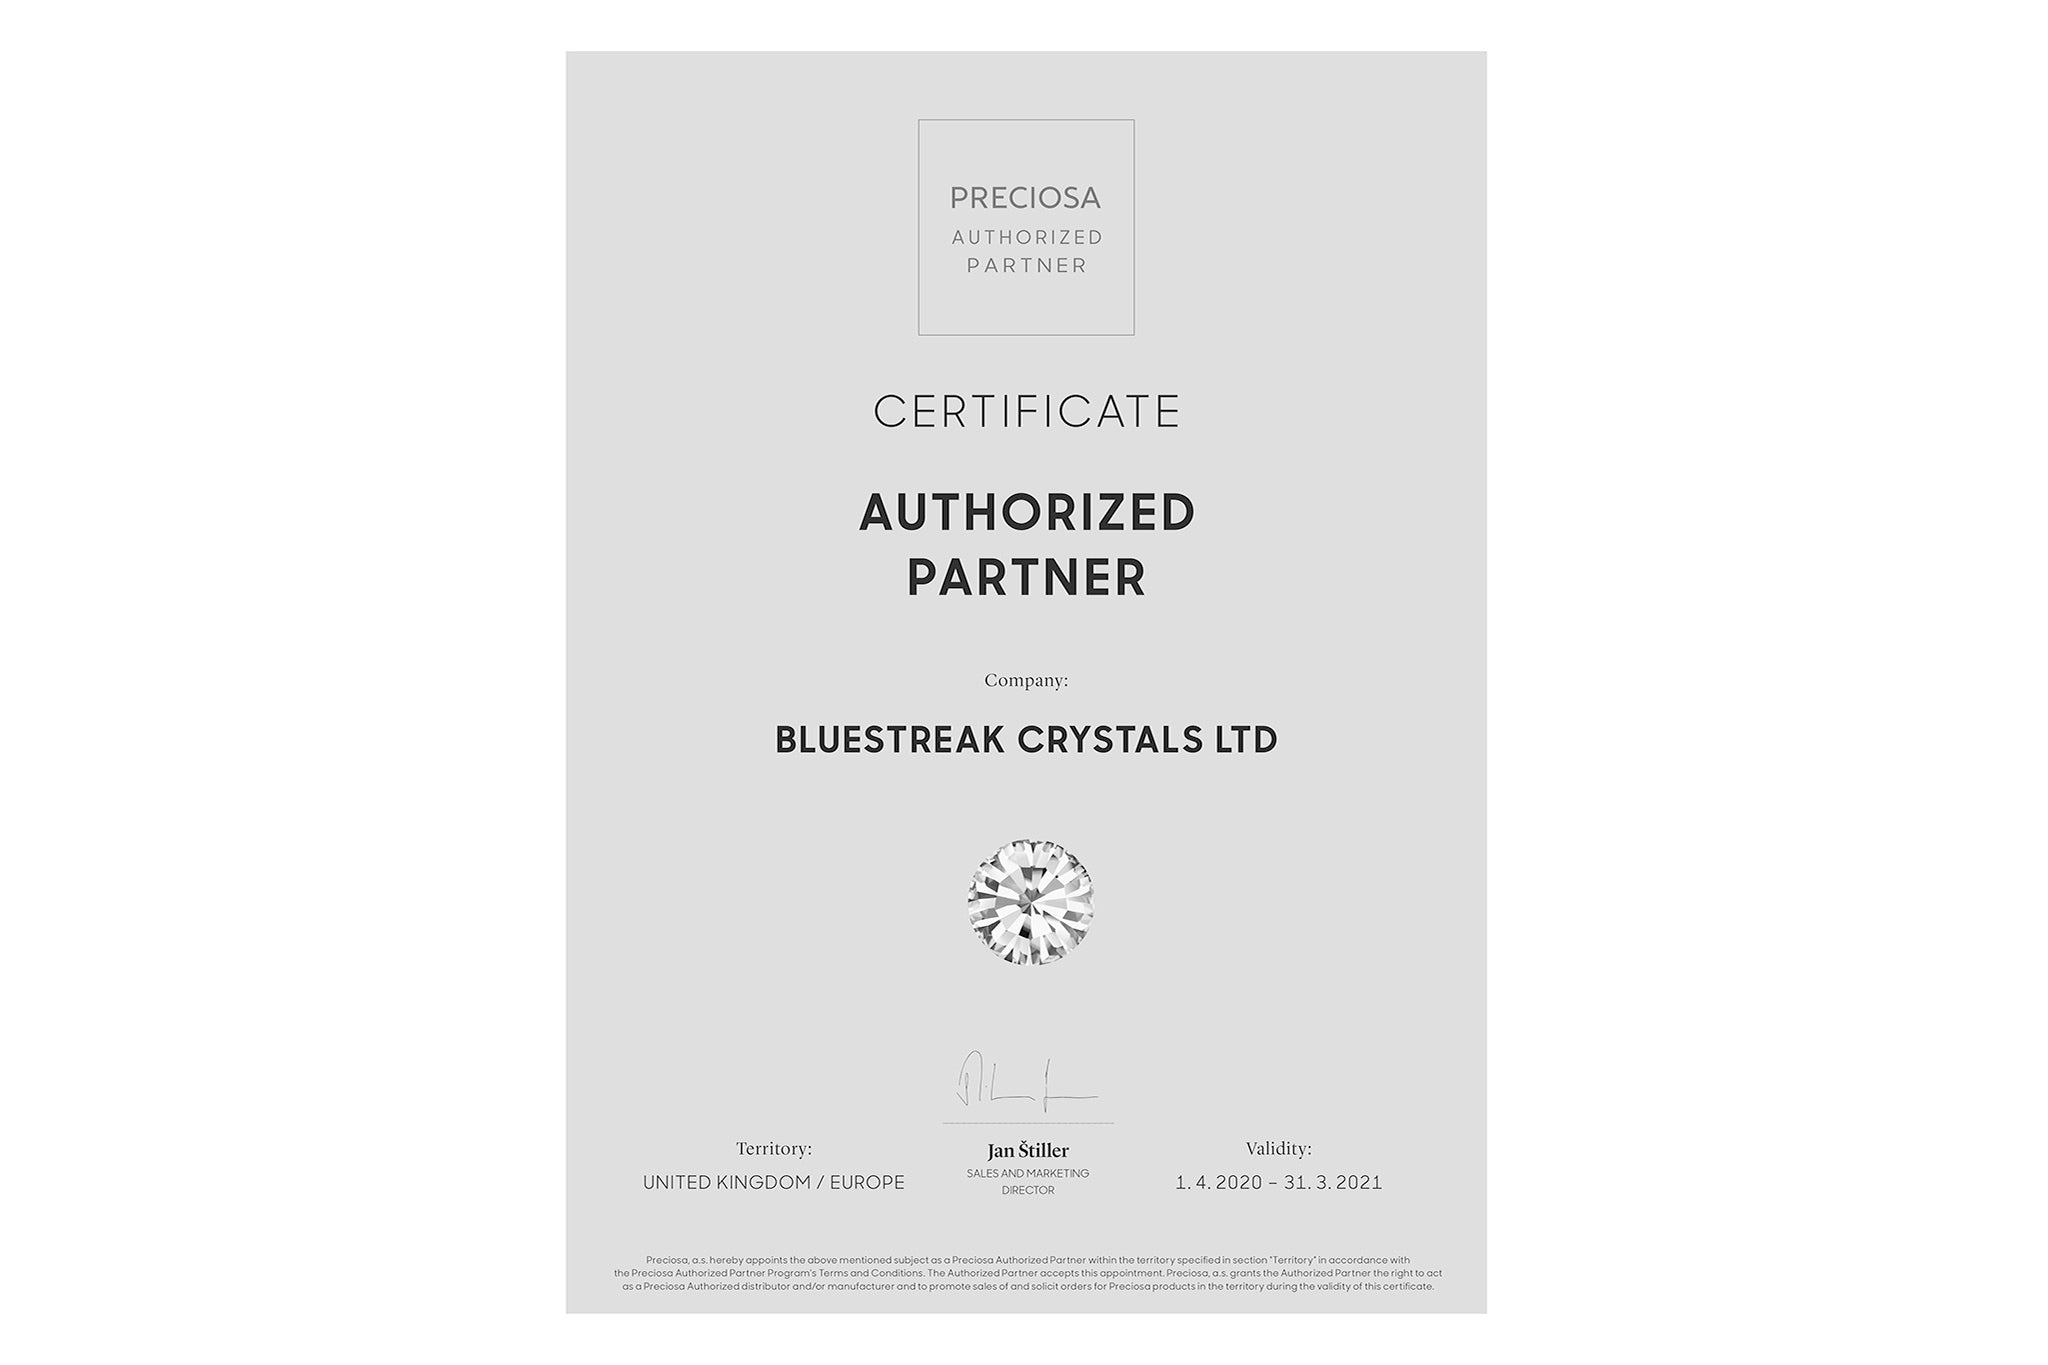 choose from the largest range of Preciosa beads and crystals at bluestreak crystals